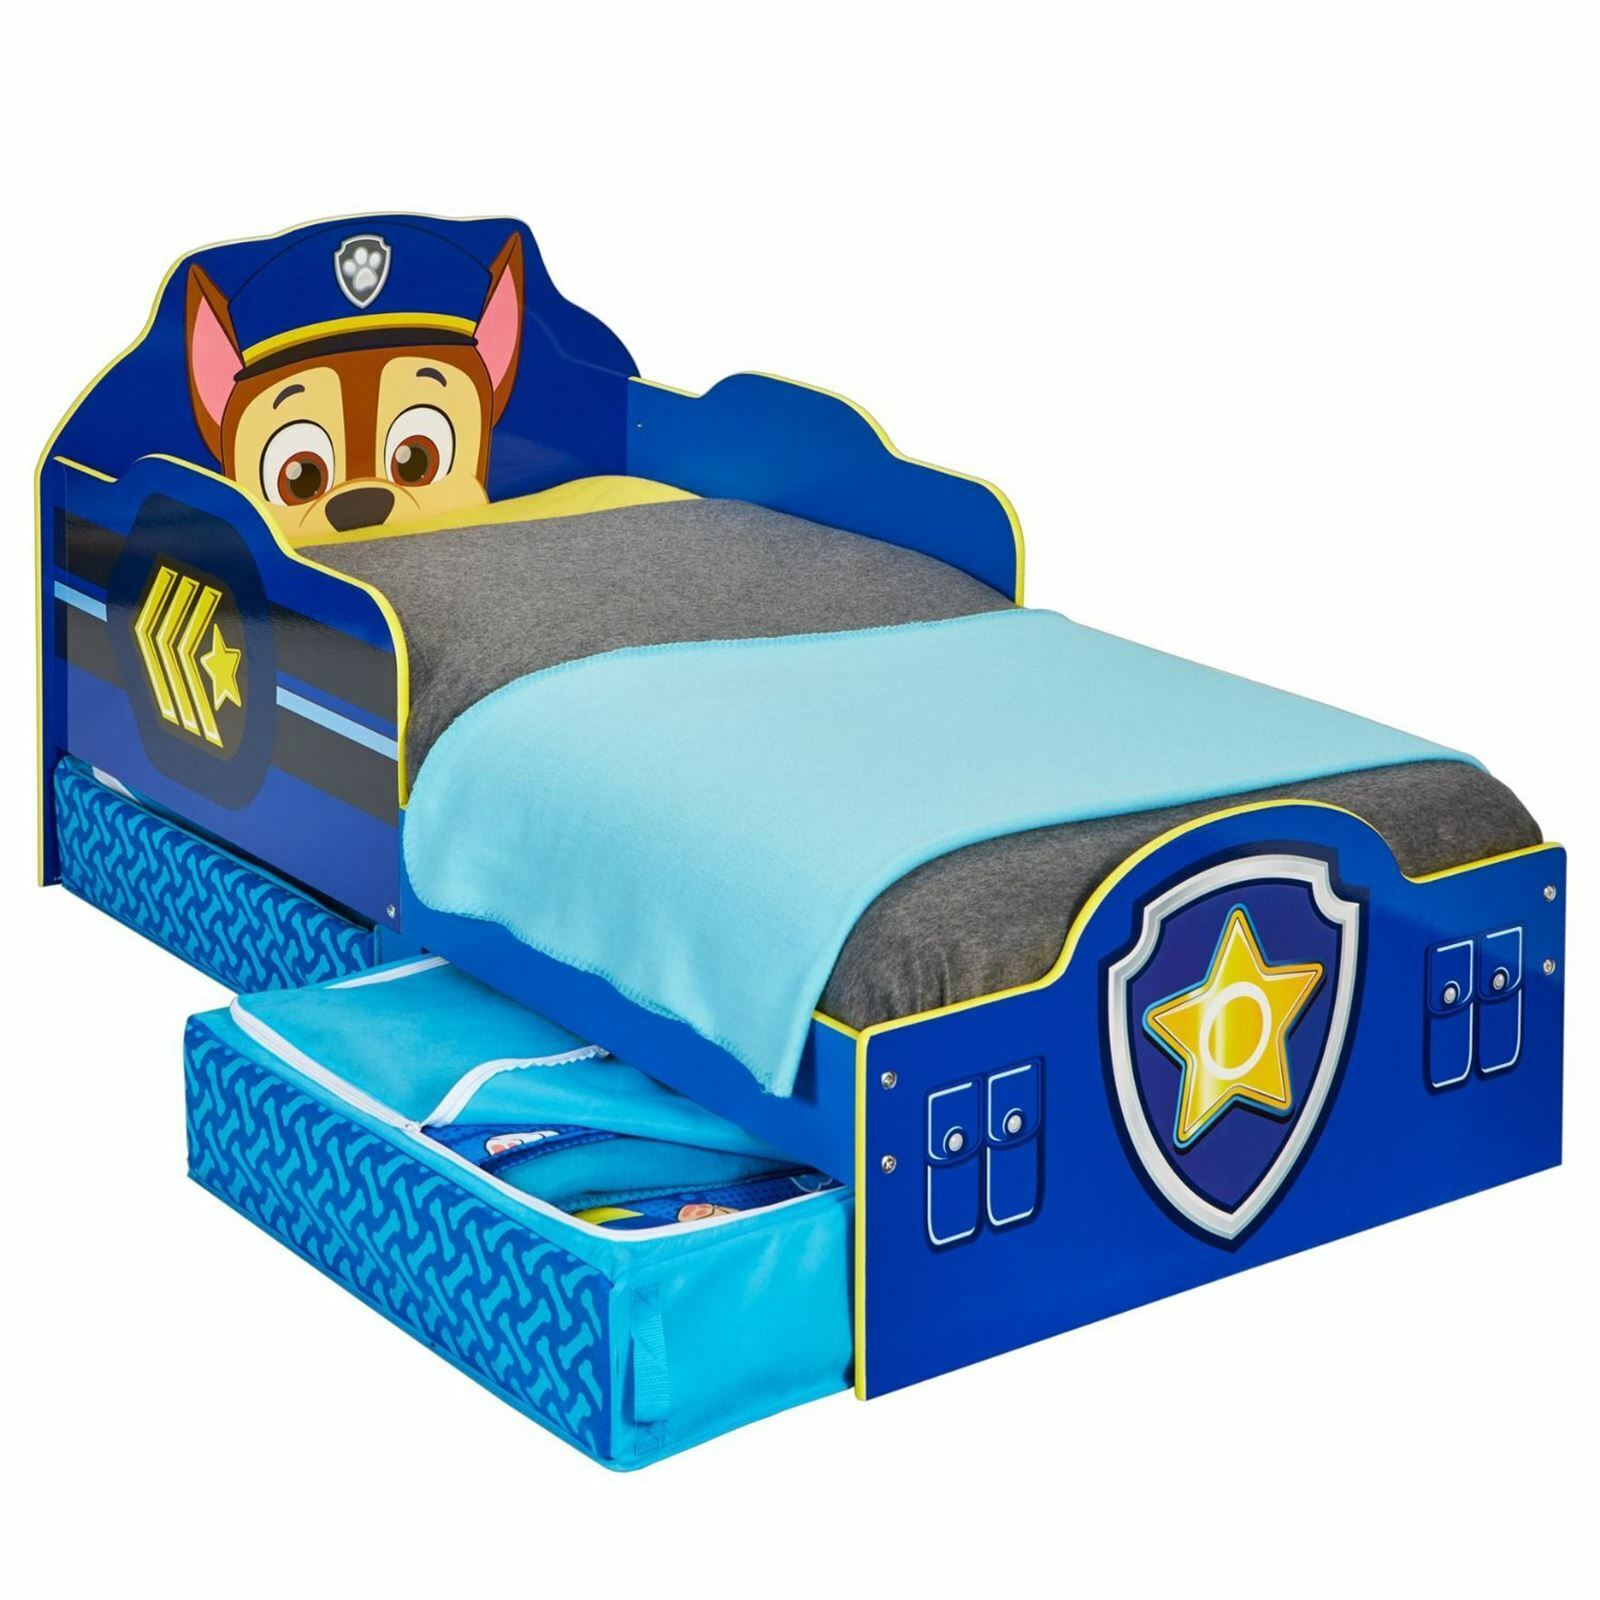 Paw Patrol Chase Baby bed with Storage Plus Fully Saut Mattress FREE P + P